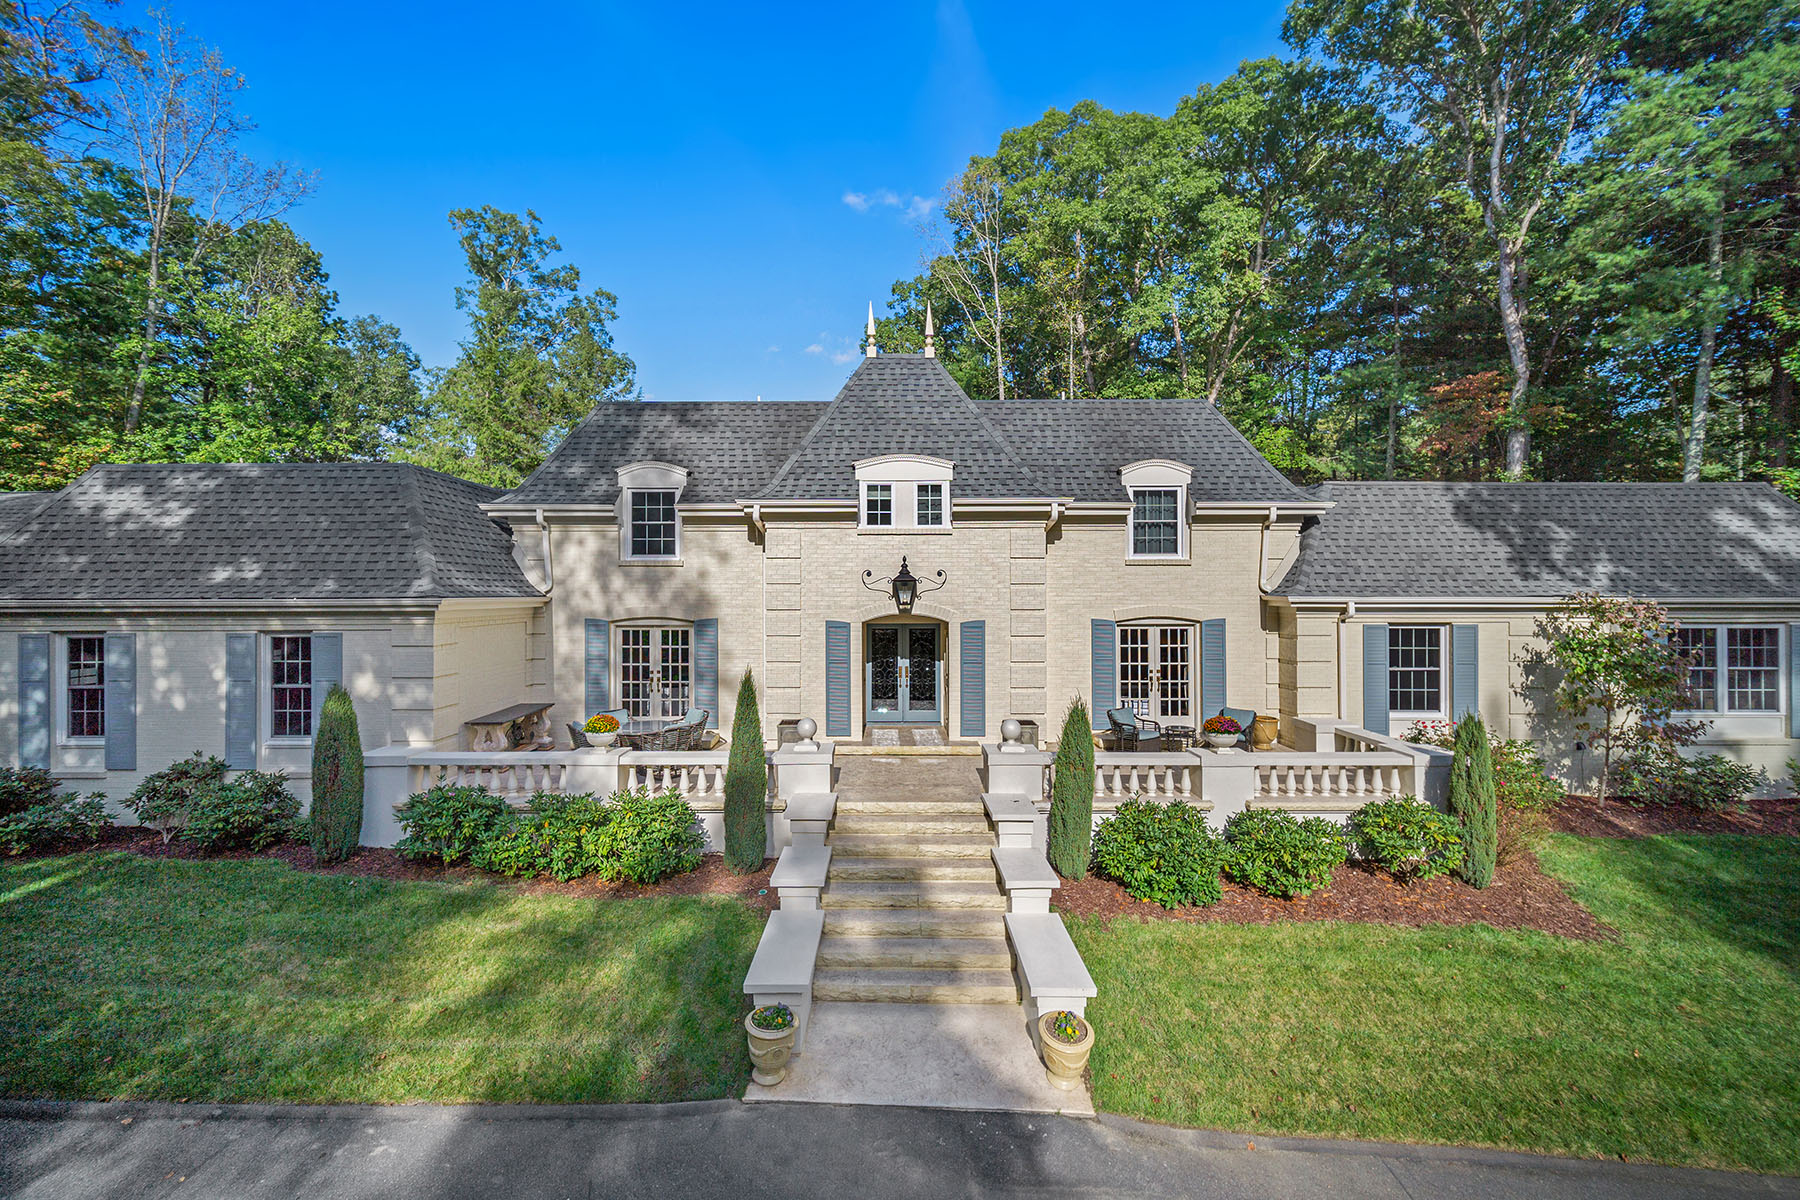 Single Family Homes for Sale at BILMORE FOREST 120 Stuyvesant Rd Asheville, North Carolina 28803 United States